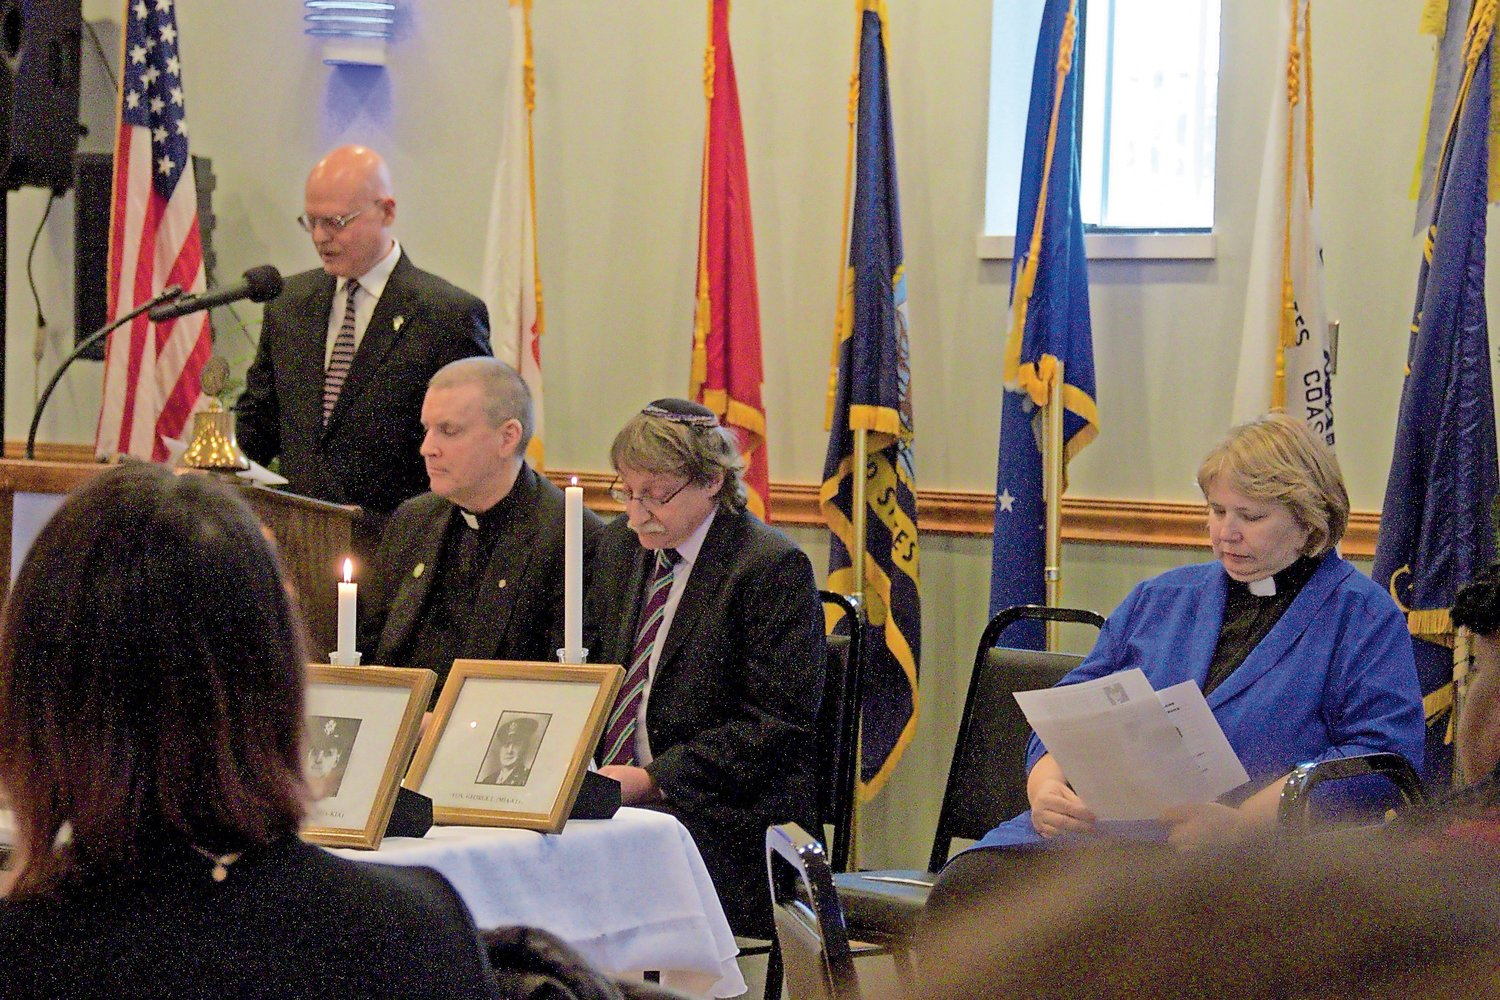 The Rev. Mark Applewhite, far left, the Rev. Timothy Valentine, Rabbi Irwin Huberman and the Rev. Dr. Kimberly Wilson represented the chaplains during the ceremony.